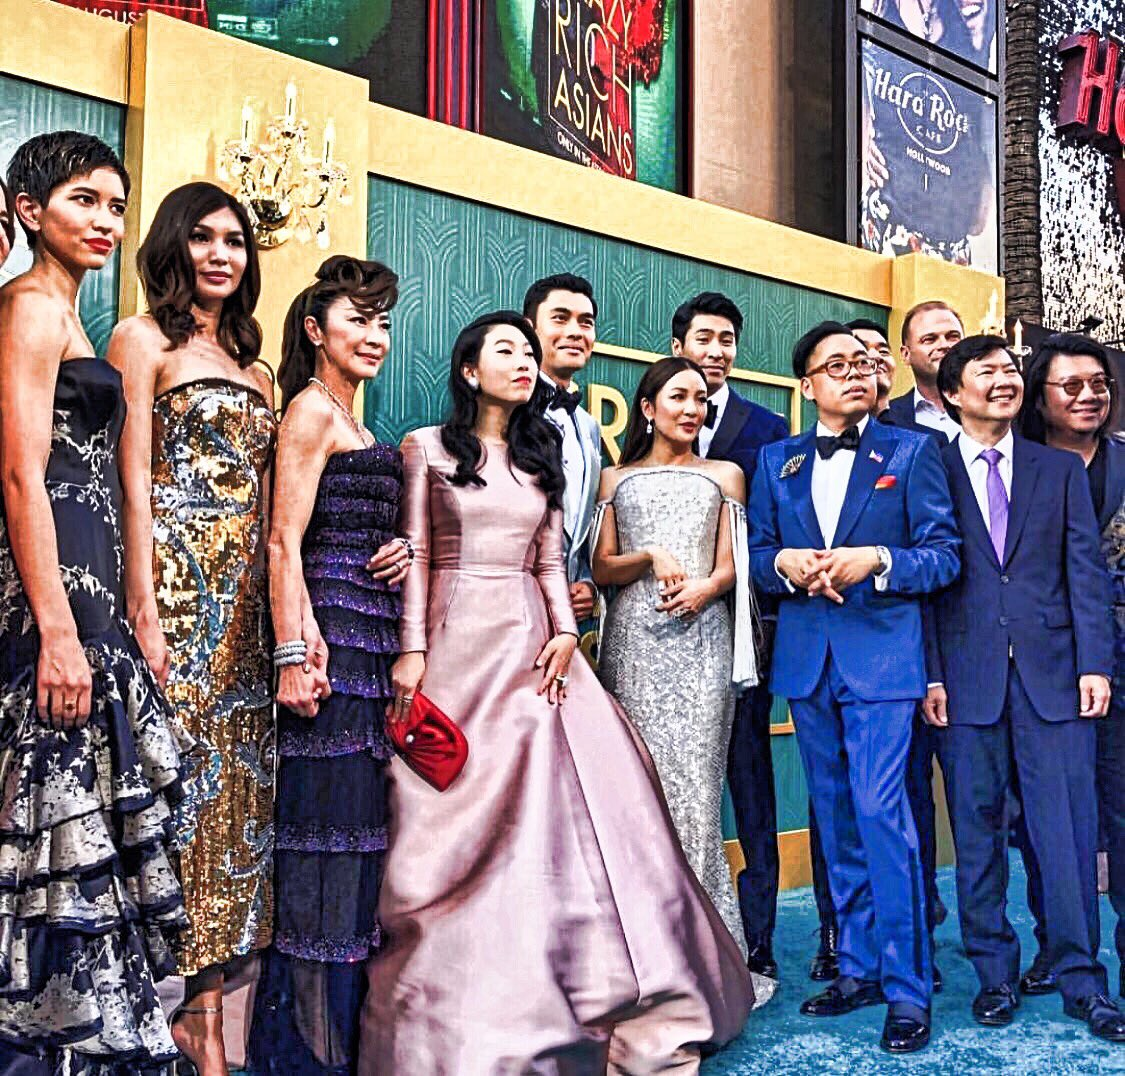 gonna need someone to frame this #CrazyRichAsians renaissance painting for me